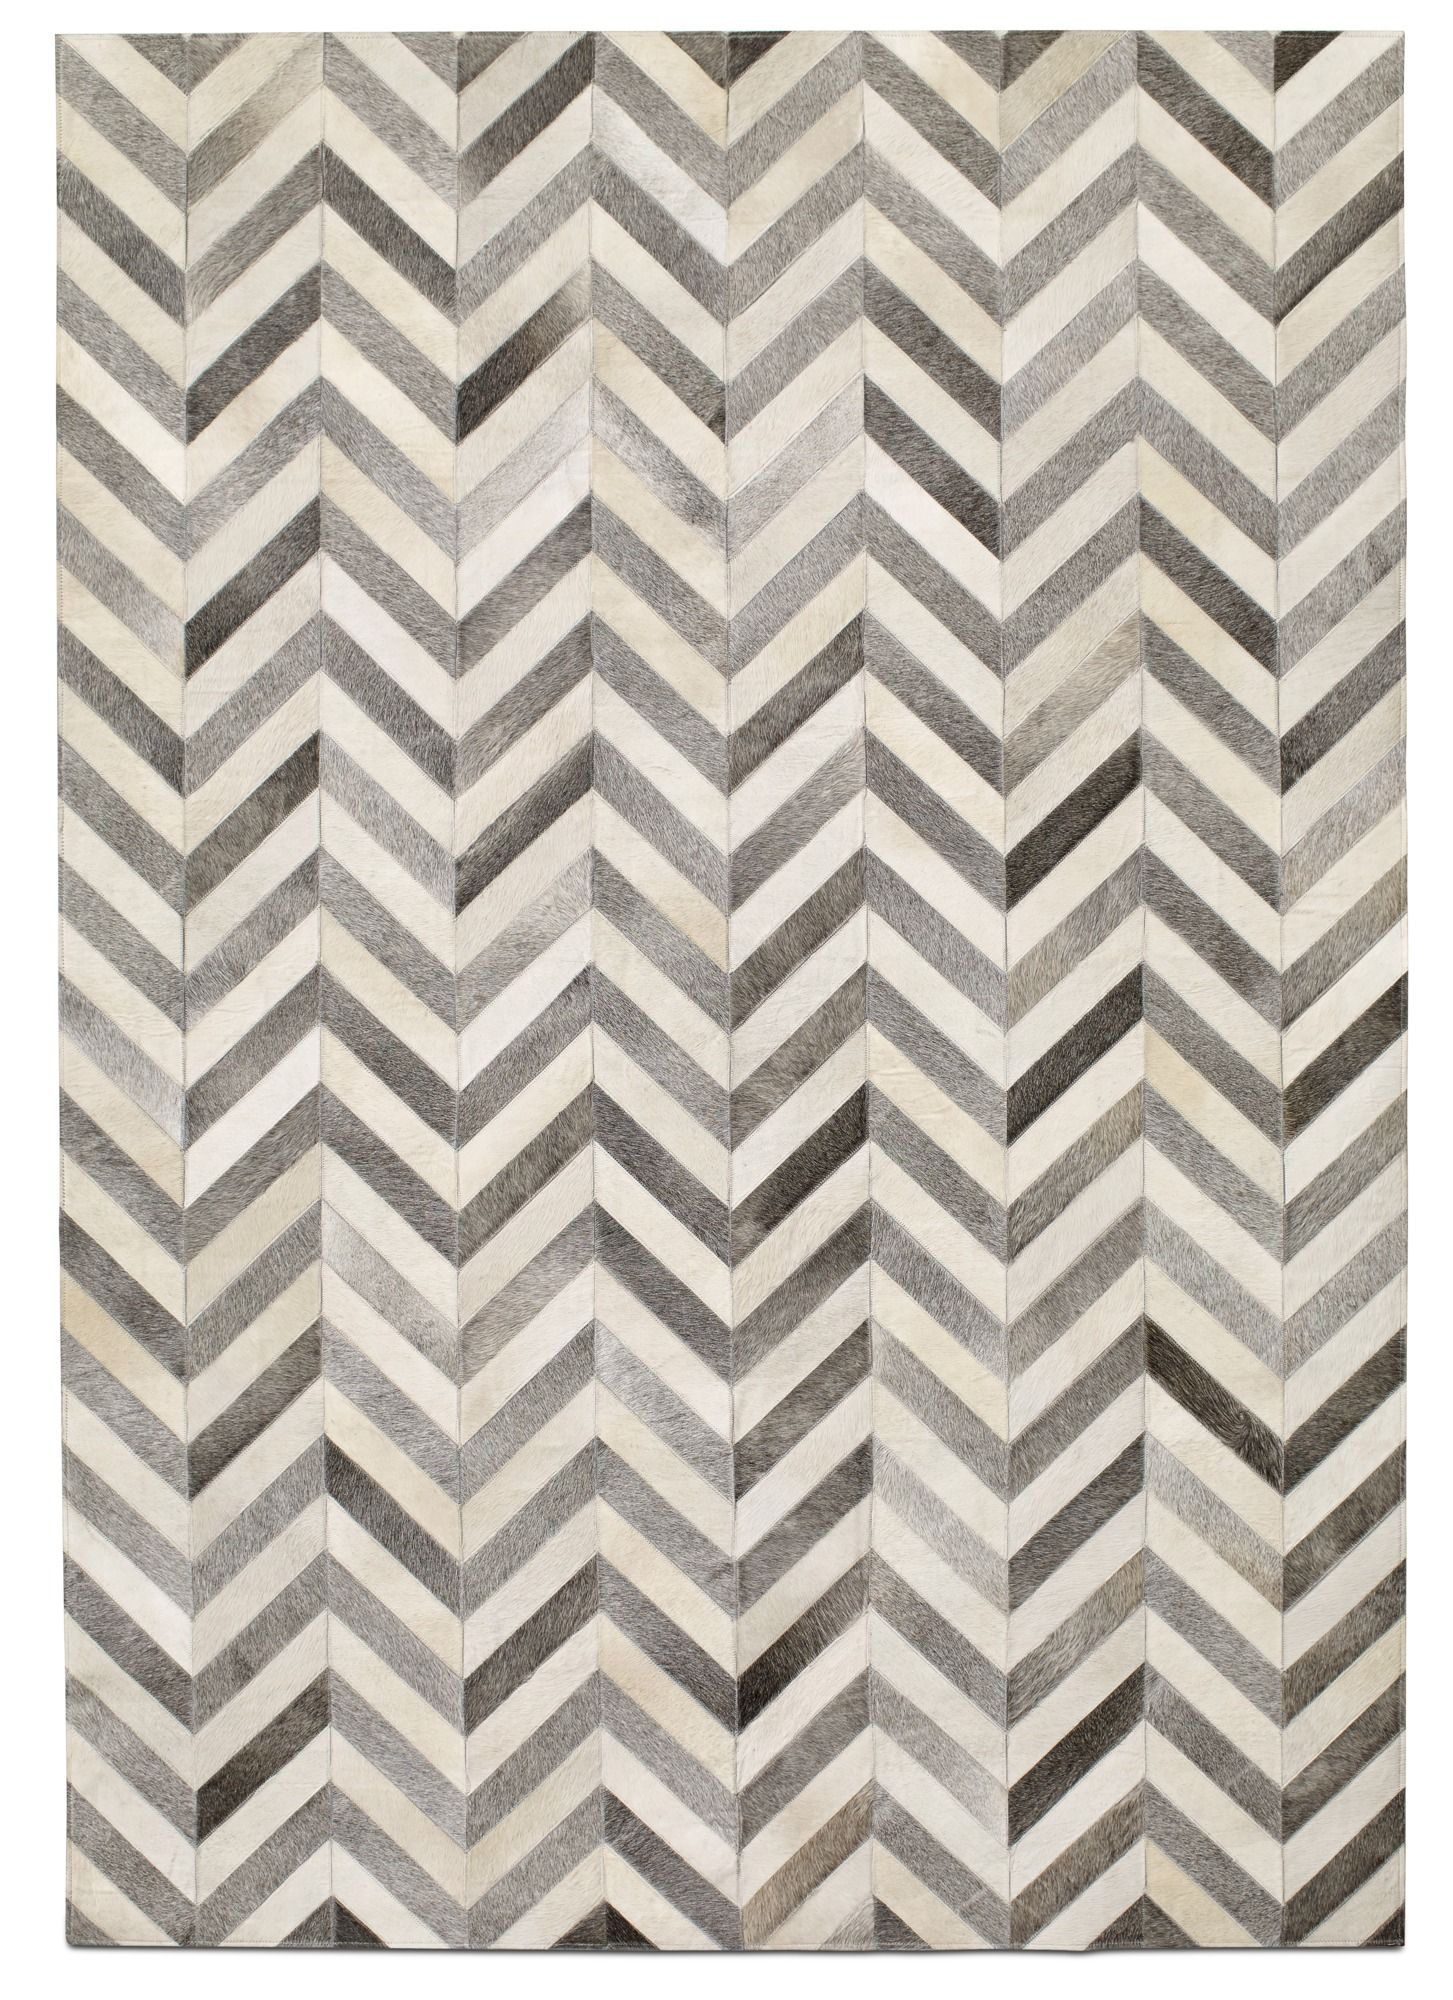 cowhide rugs from boconcept  find the coolest cowhide rugs here  - cowhide rugs from boconcept  find the coolest cowhide rugs here